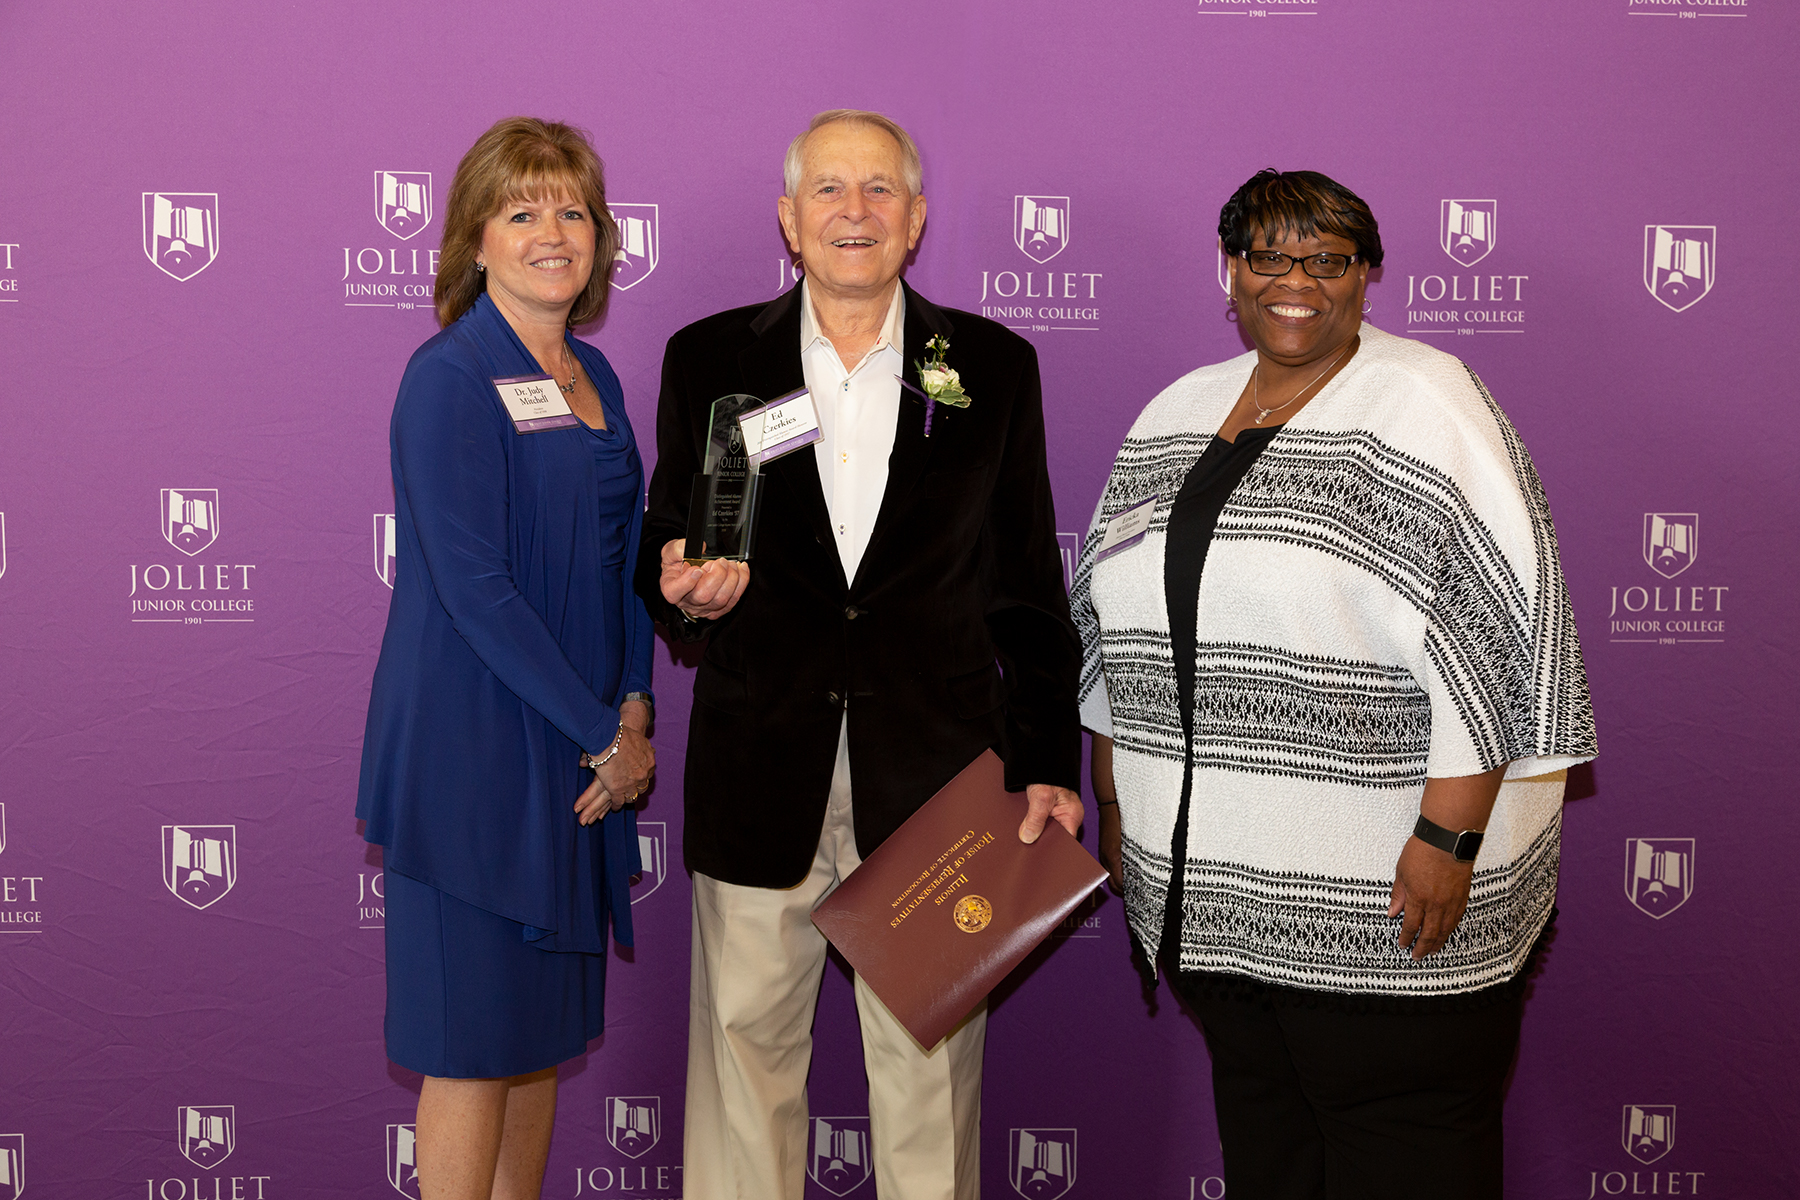 From left: JJC President Dr. Judy Mitchell, Ed Czerkies(Distinguished Alumni Achievement Award recipient), Alumni Board President Ericka Williams.